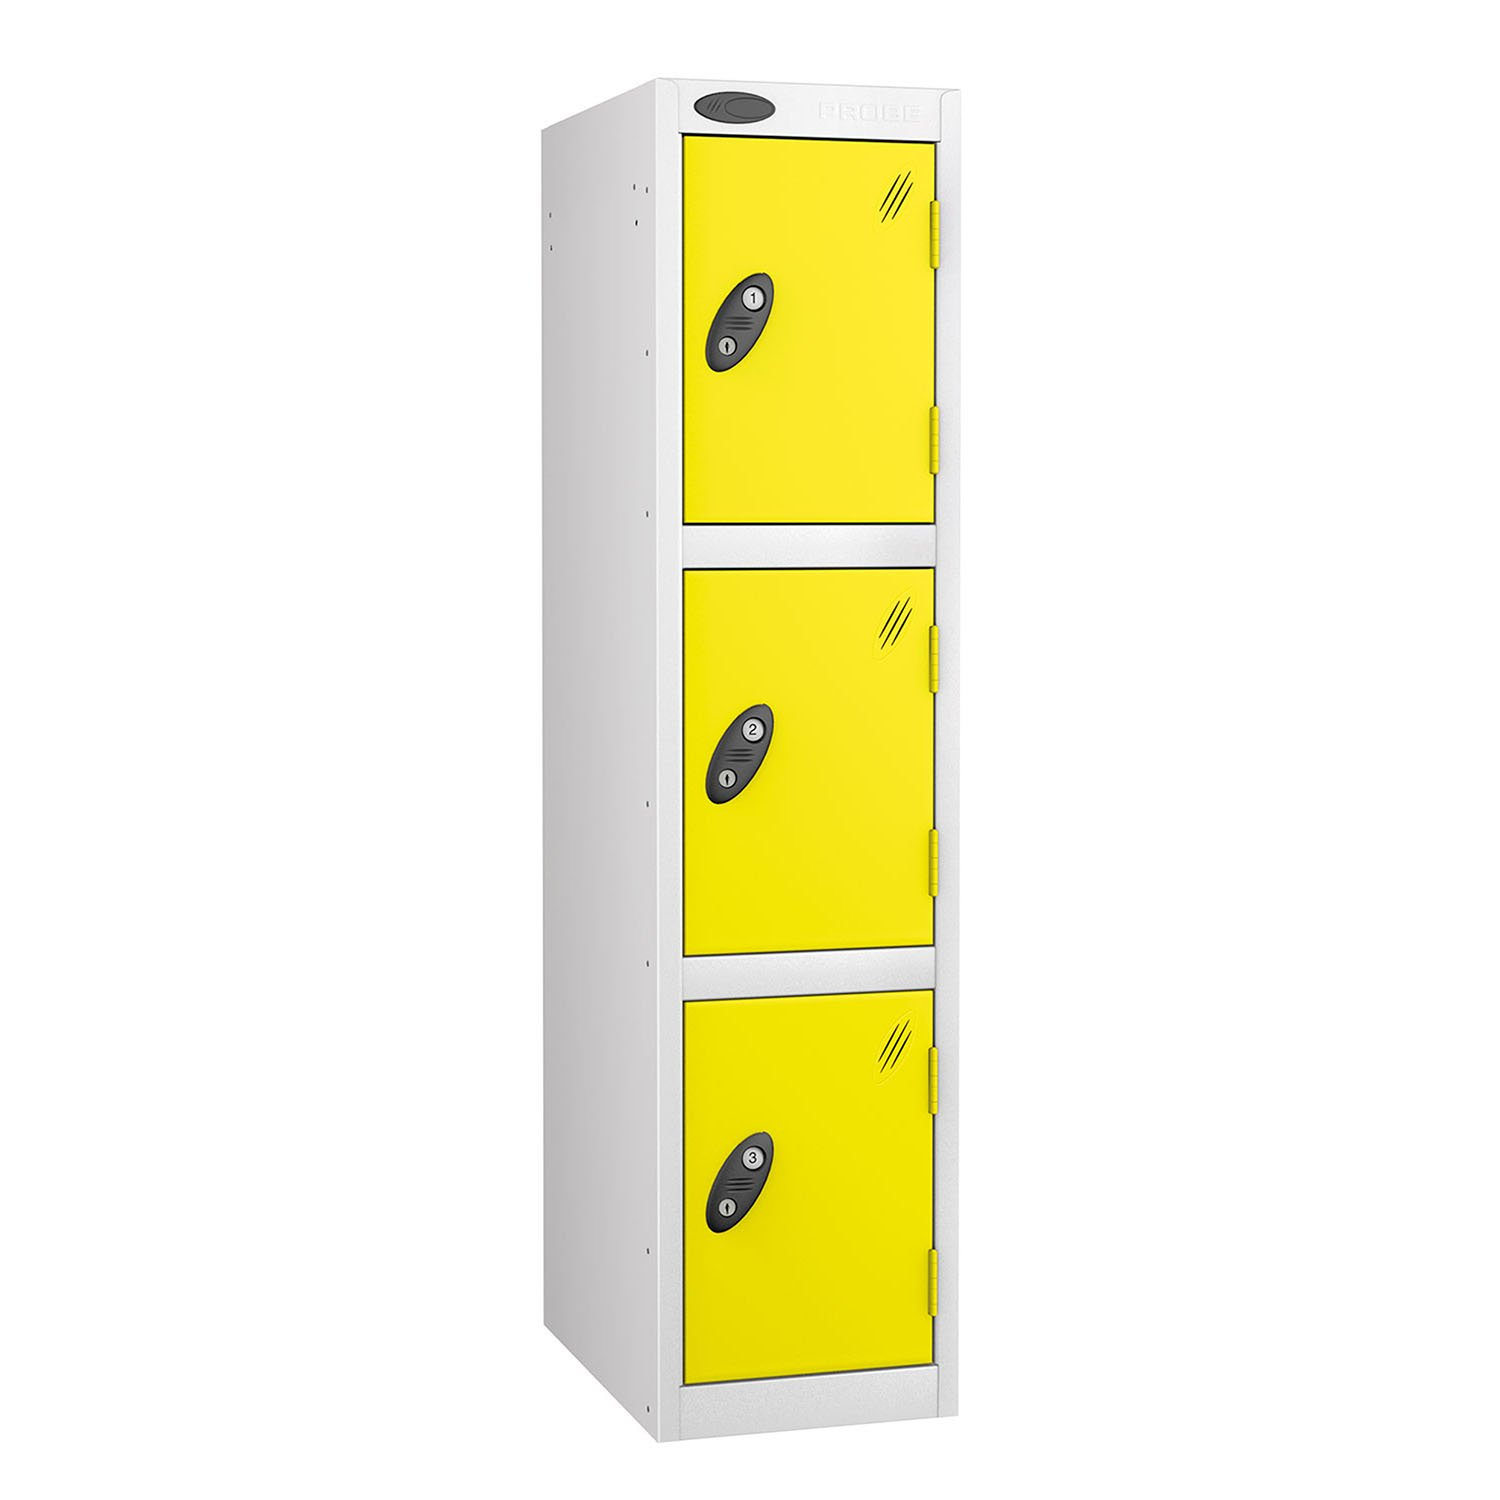 Probe 3 doors junior low locker in white-lemon colour